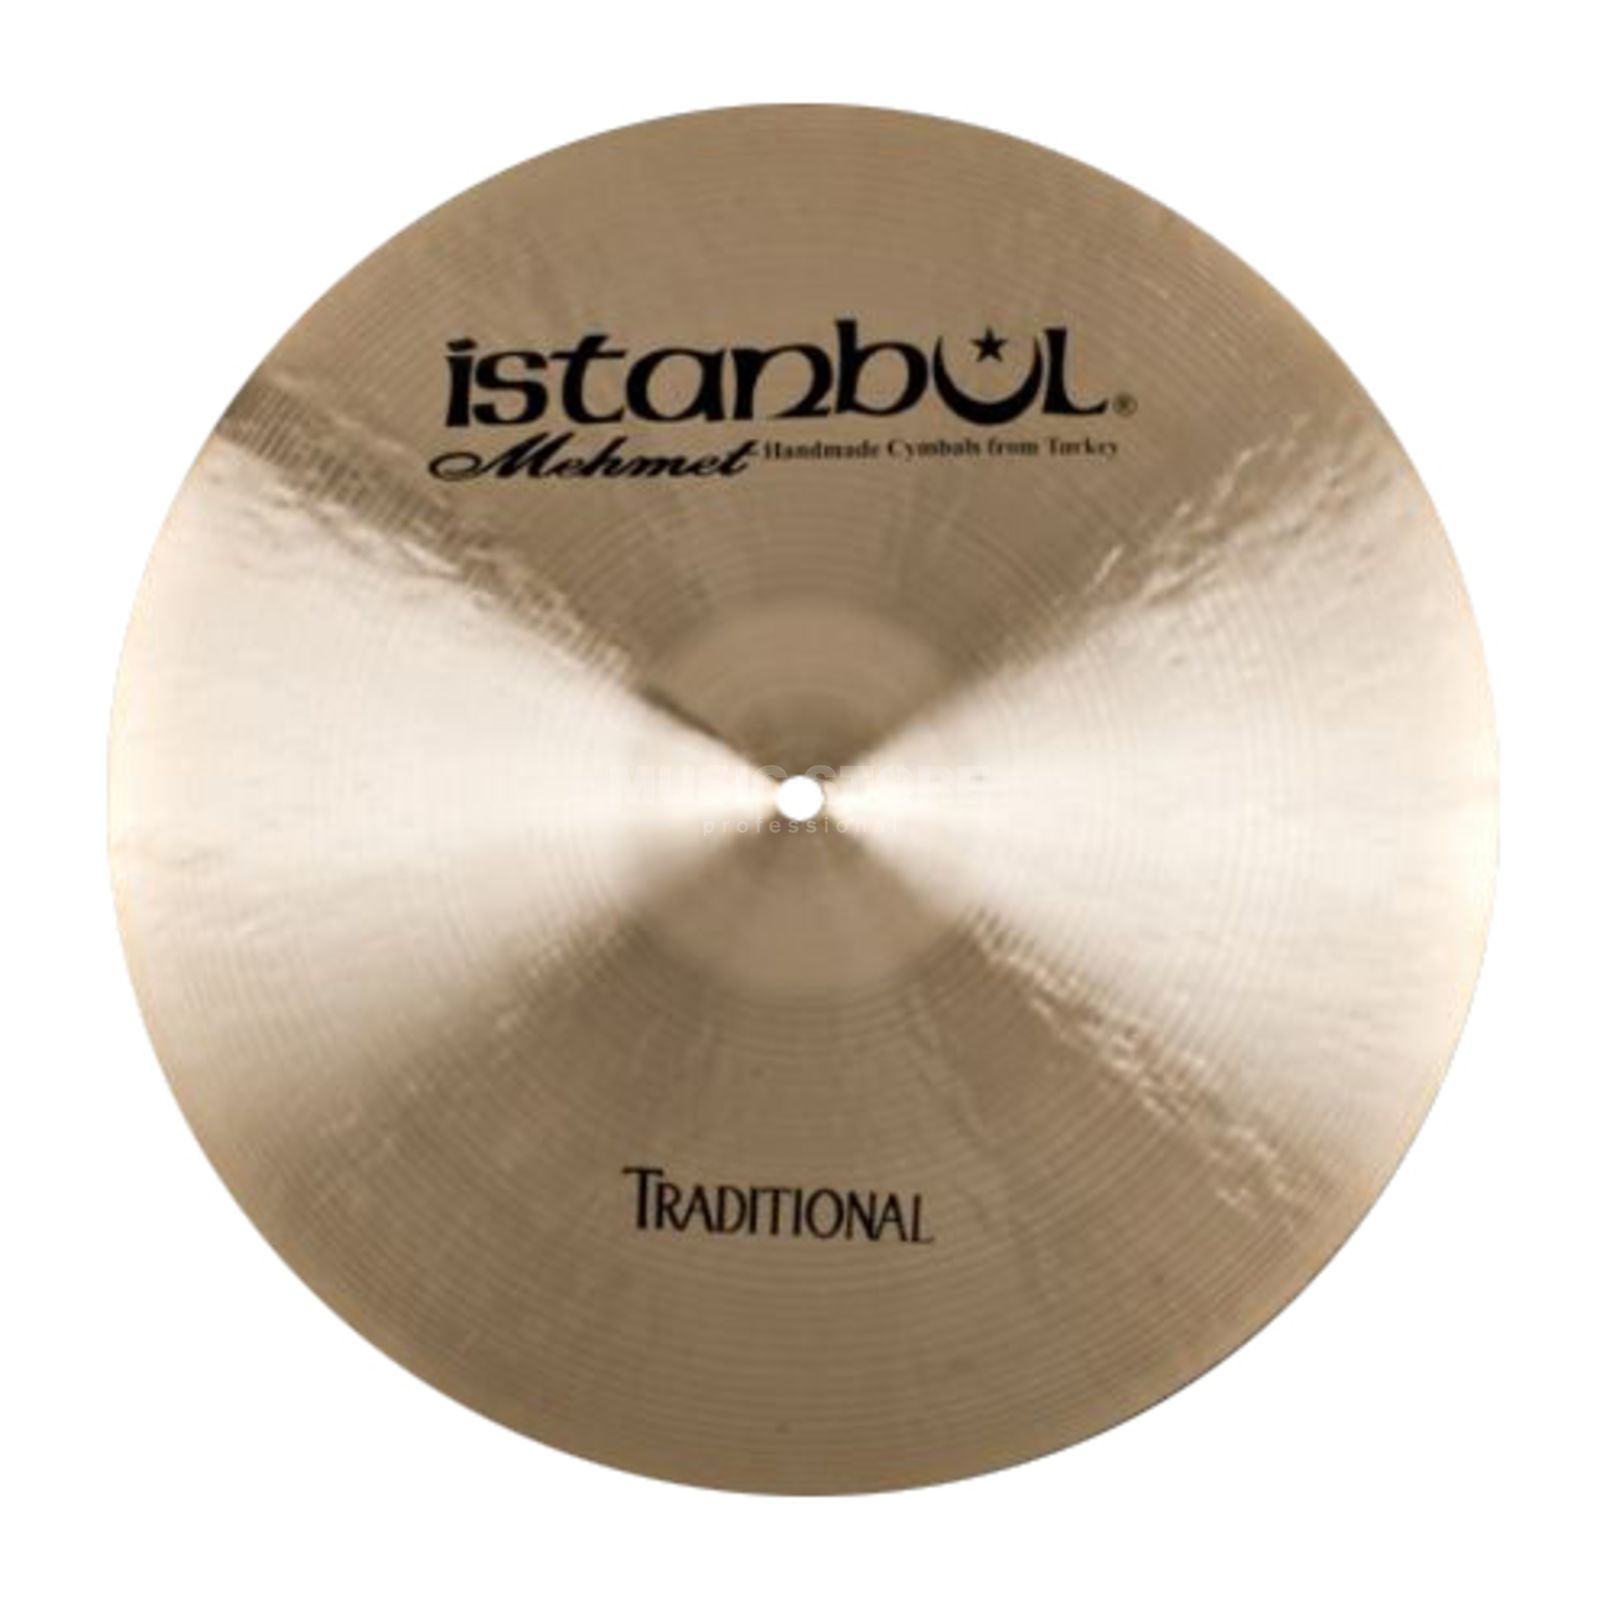 "Istanbul Traditional Dark Crash 20"", CD21 Produktbillede"